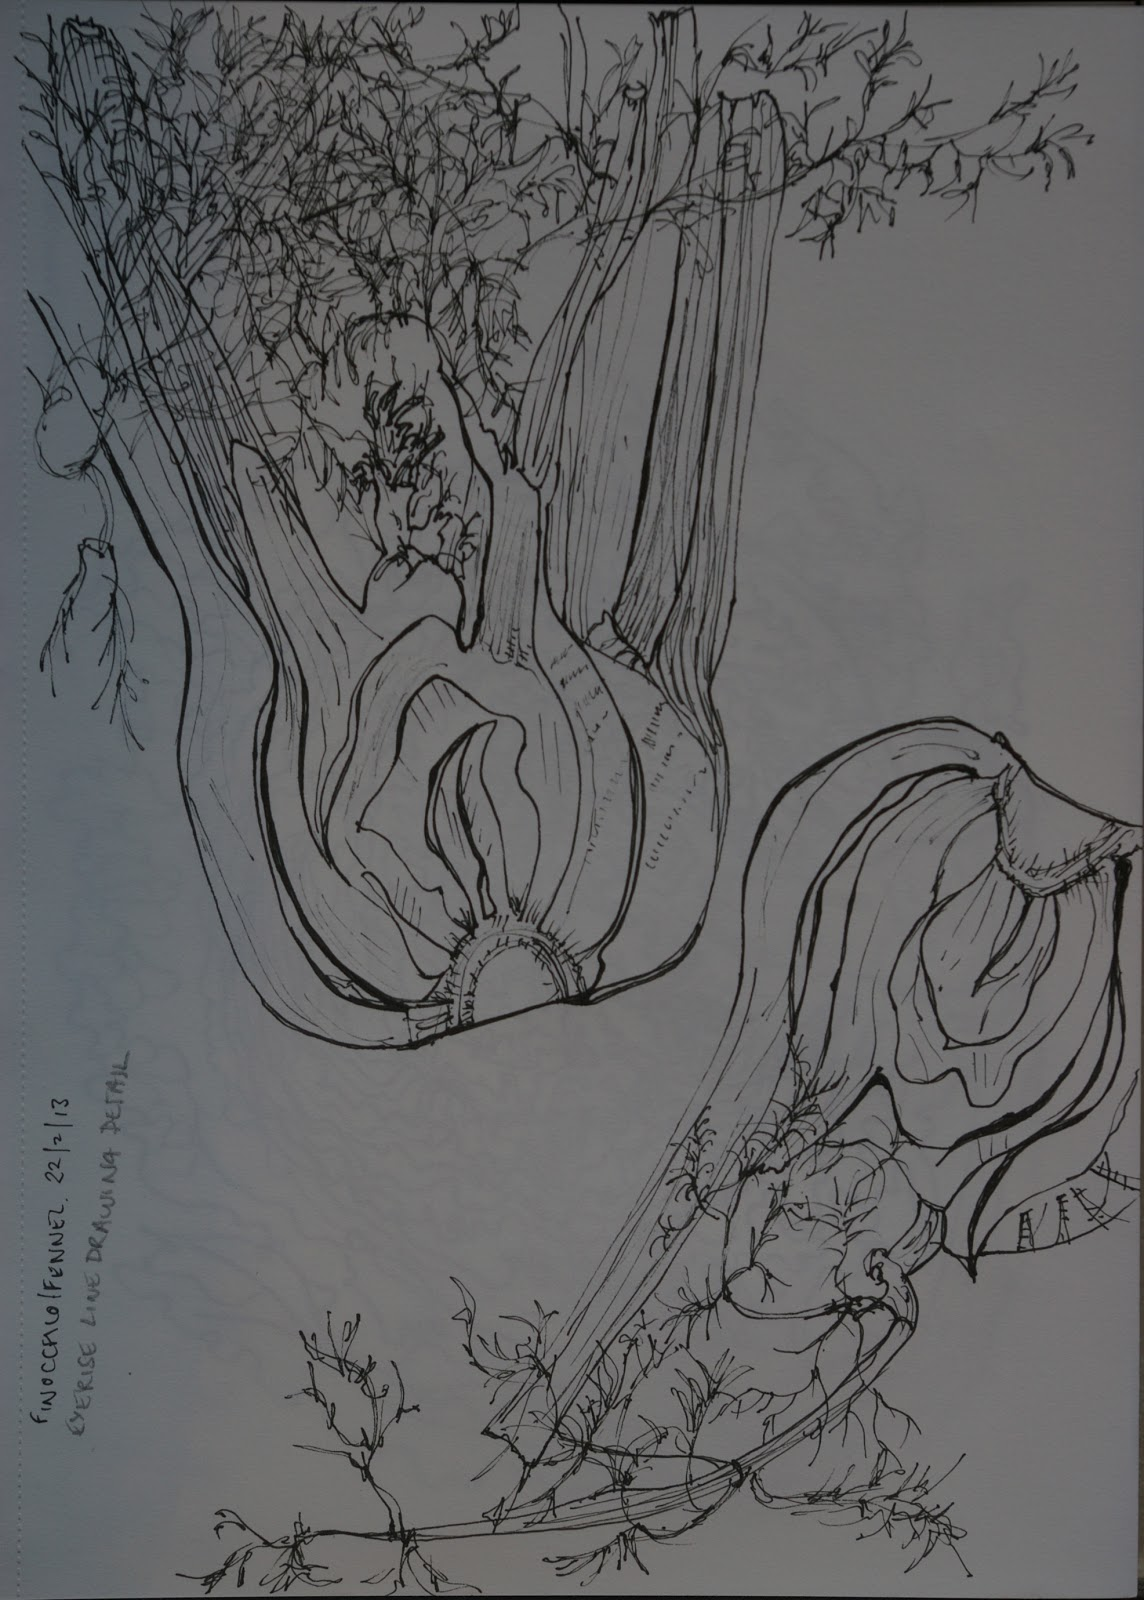 Aylish S Oca Learning Log Project Detailed Observation Exercise Line Drawing Detail